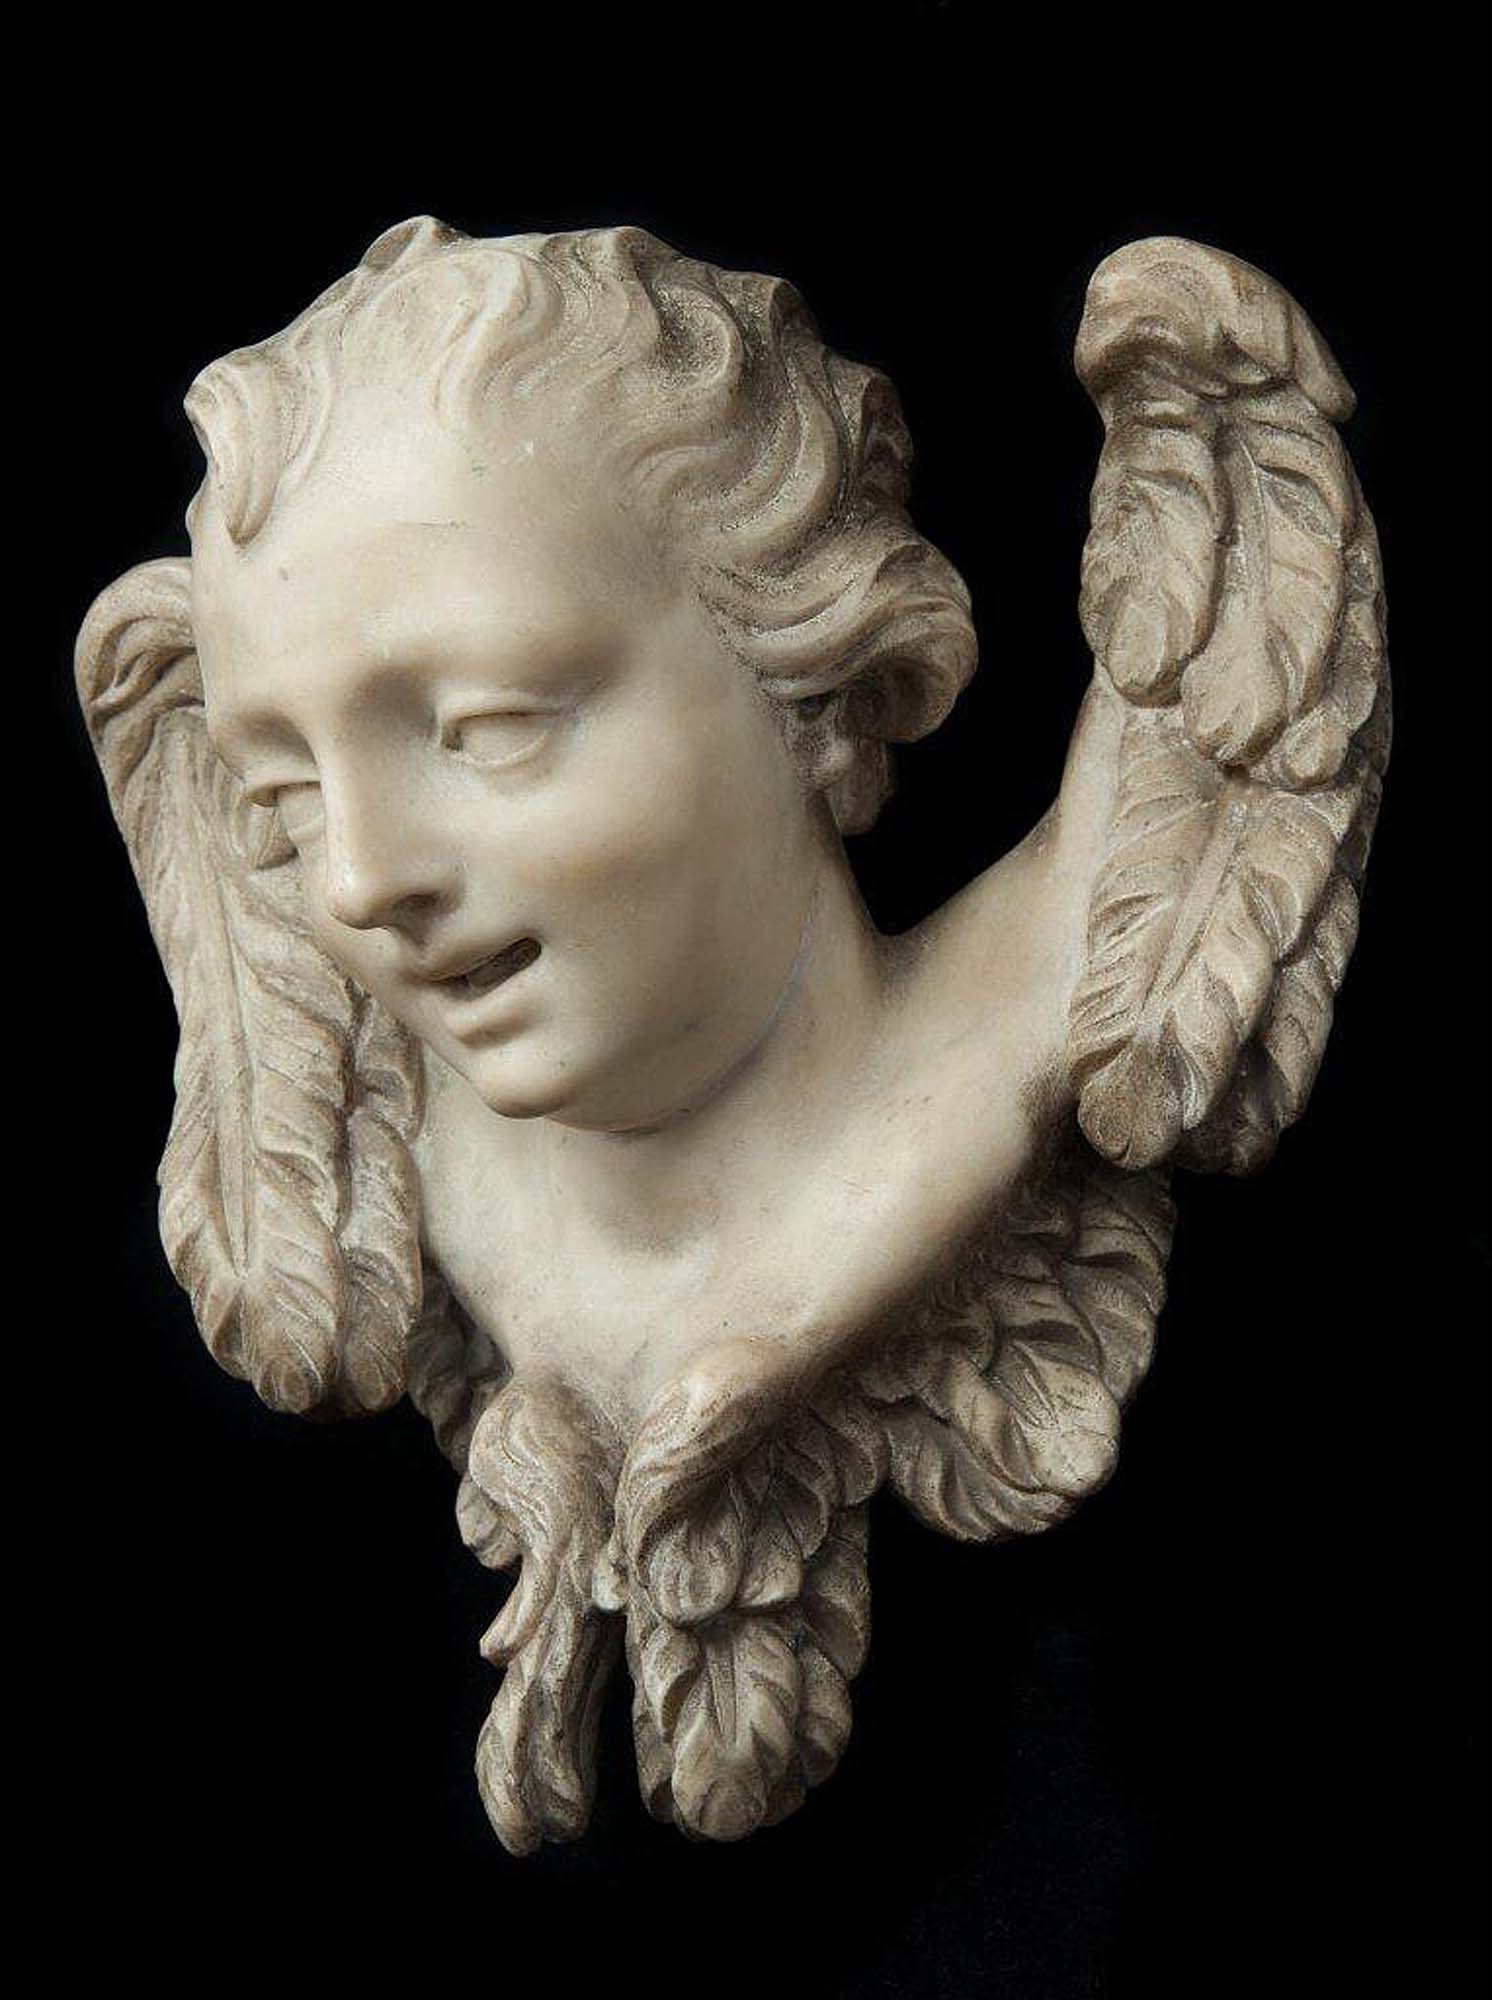 Antique marble sculpture of the head of an angel